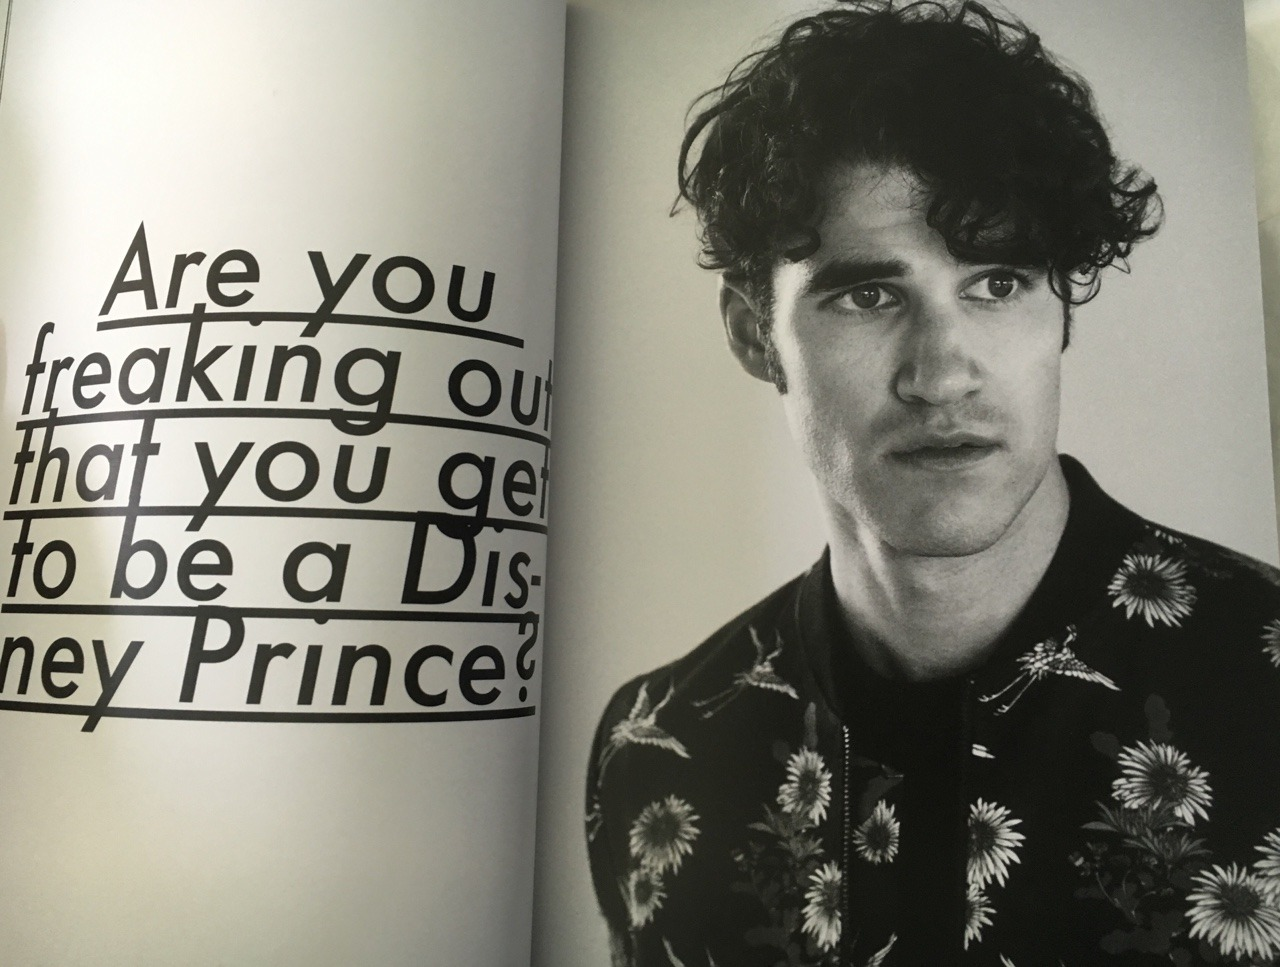 darrencriss - Photos/Gifs of Darren in 2016 - Page 2 Tumblr_odlsakSzvZ1r9lj61o3_1280